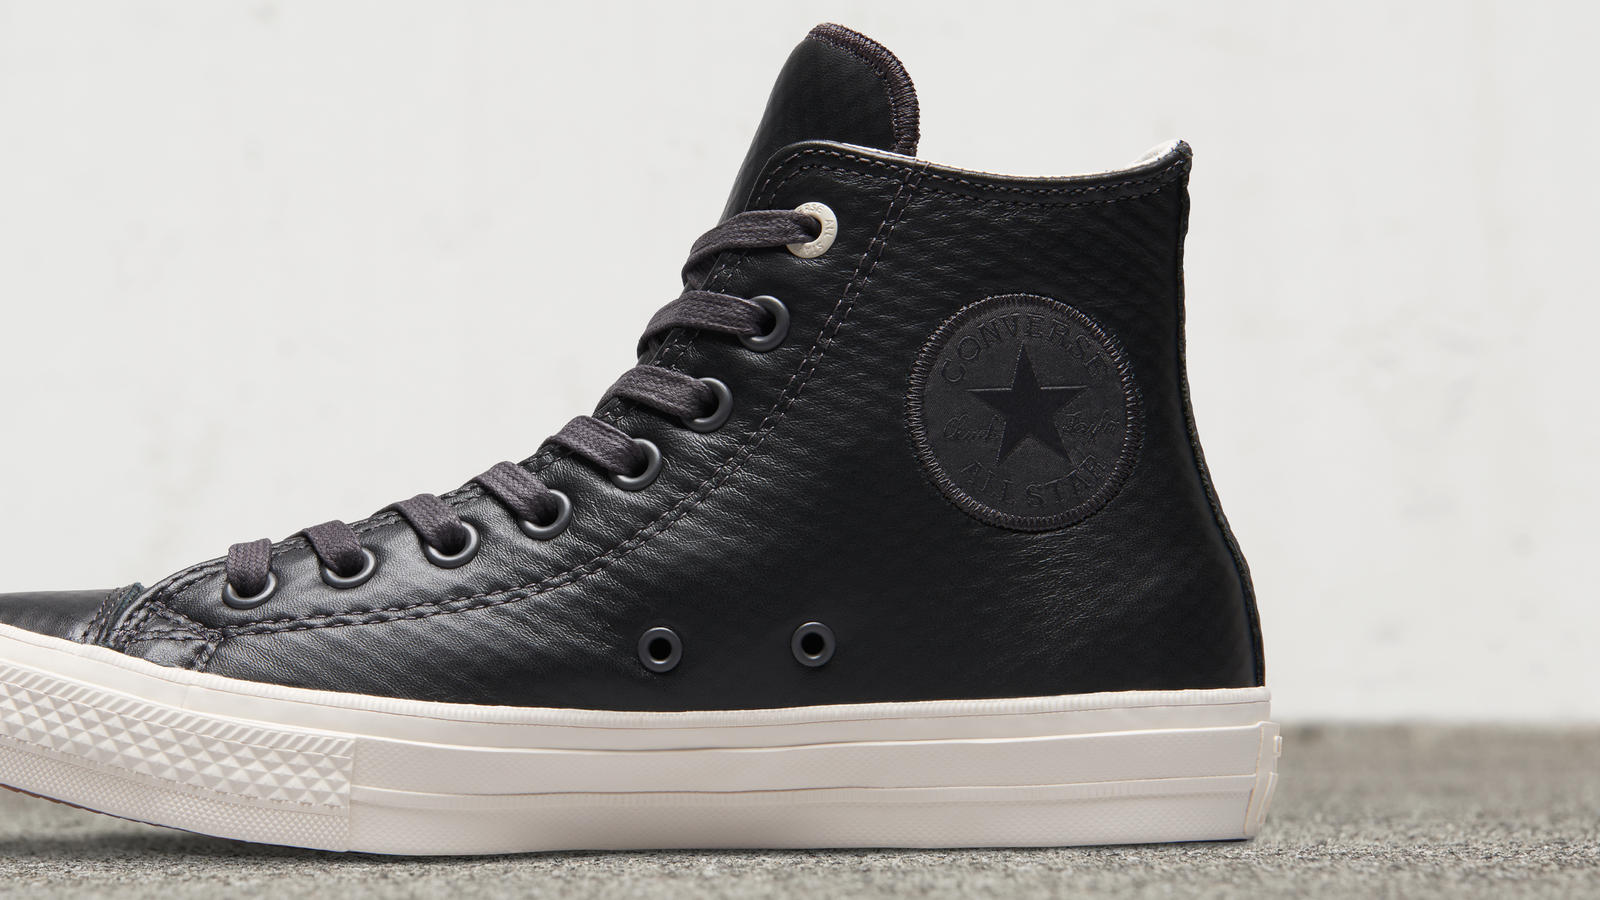 converse chuck ii waterproof mesh backed leather